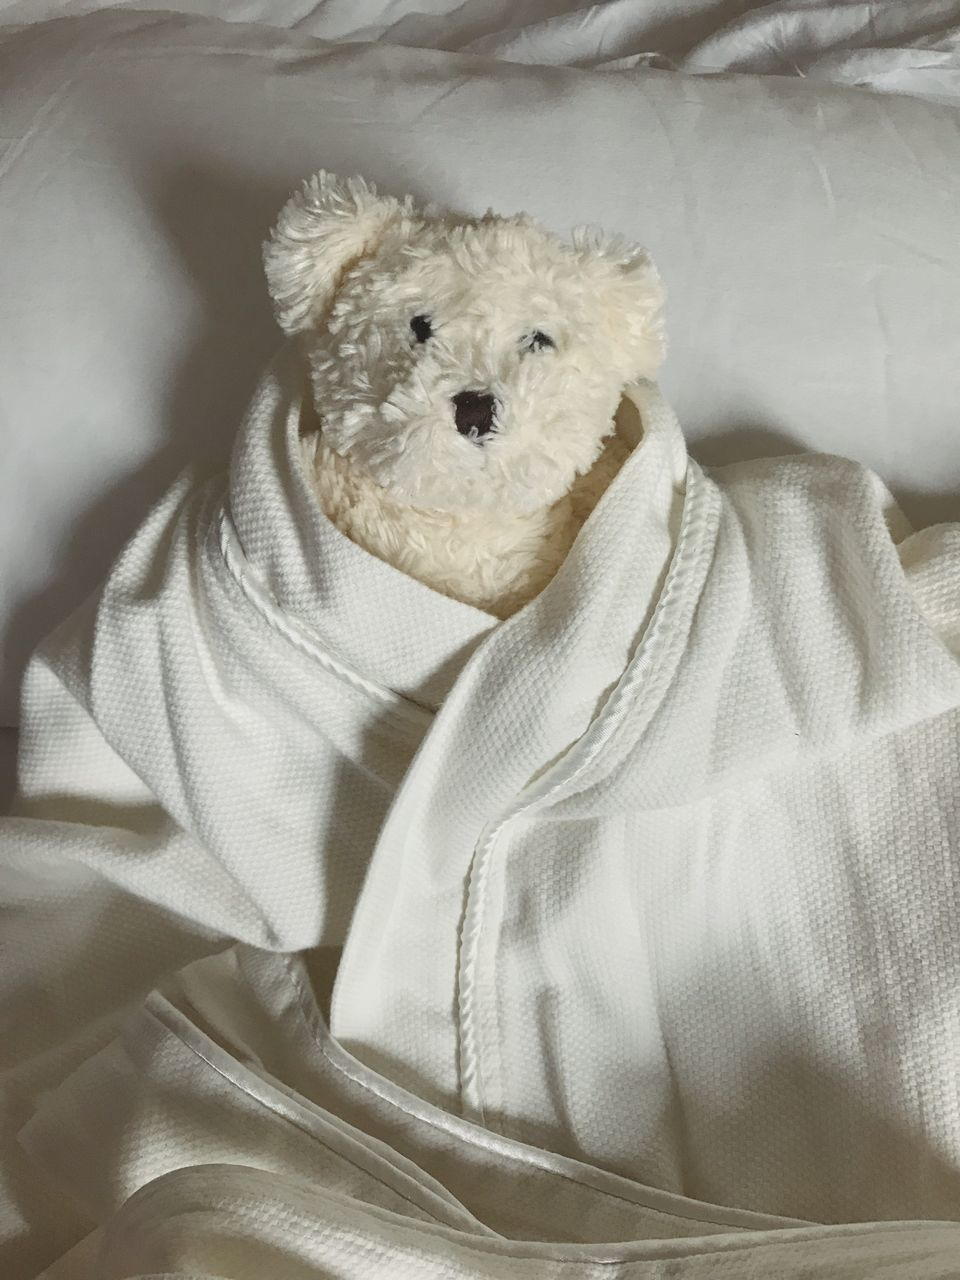 dog, indoors, mammal, one animal, comfortable, bed, pets, cute, lying down, no people, domestic animals, teddy bear, sheet, relaxation, animal themes, stuffed toy, looking at camera, childhood, close-up, portrait, day